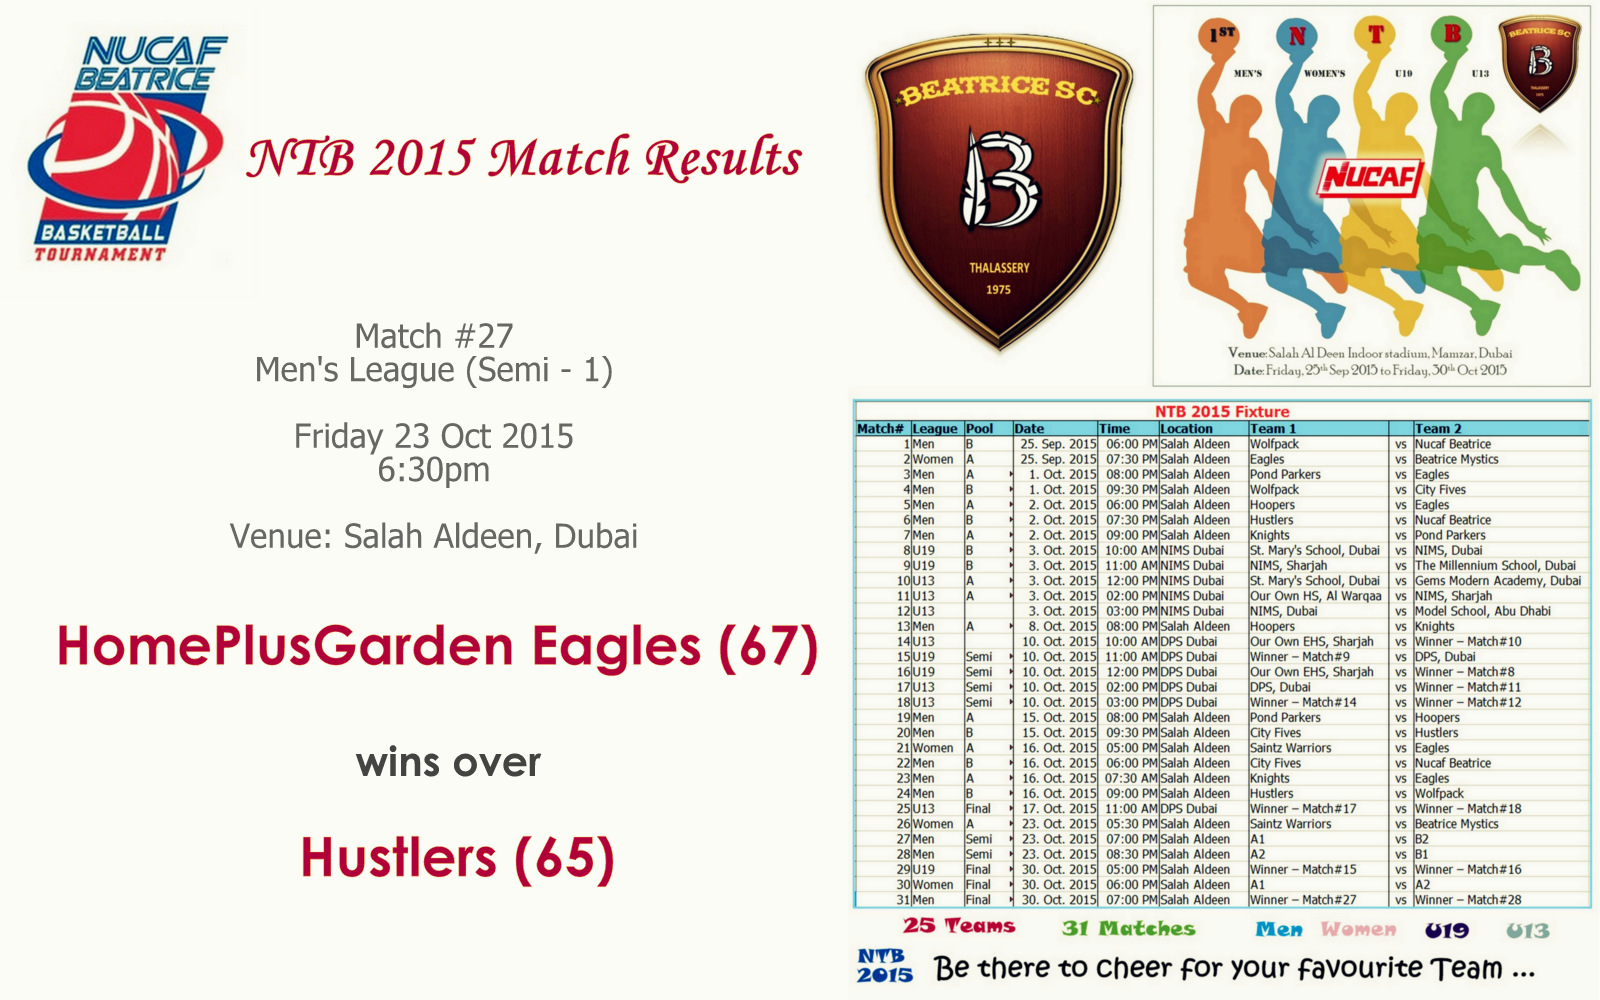 NTB 2015 – Match #27  (Men's Semi-1) | HomePlusGarden Eagles (67) Vs Hustlers (65)